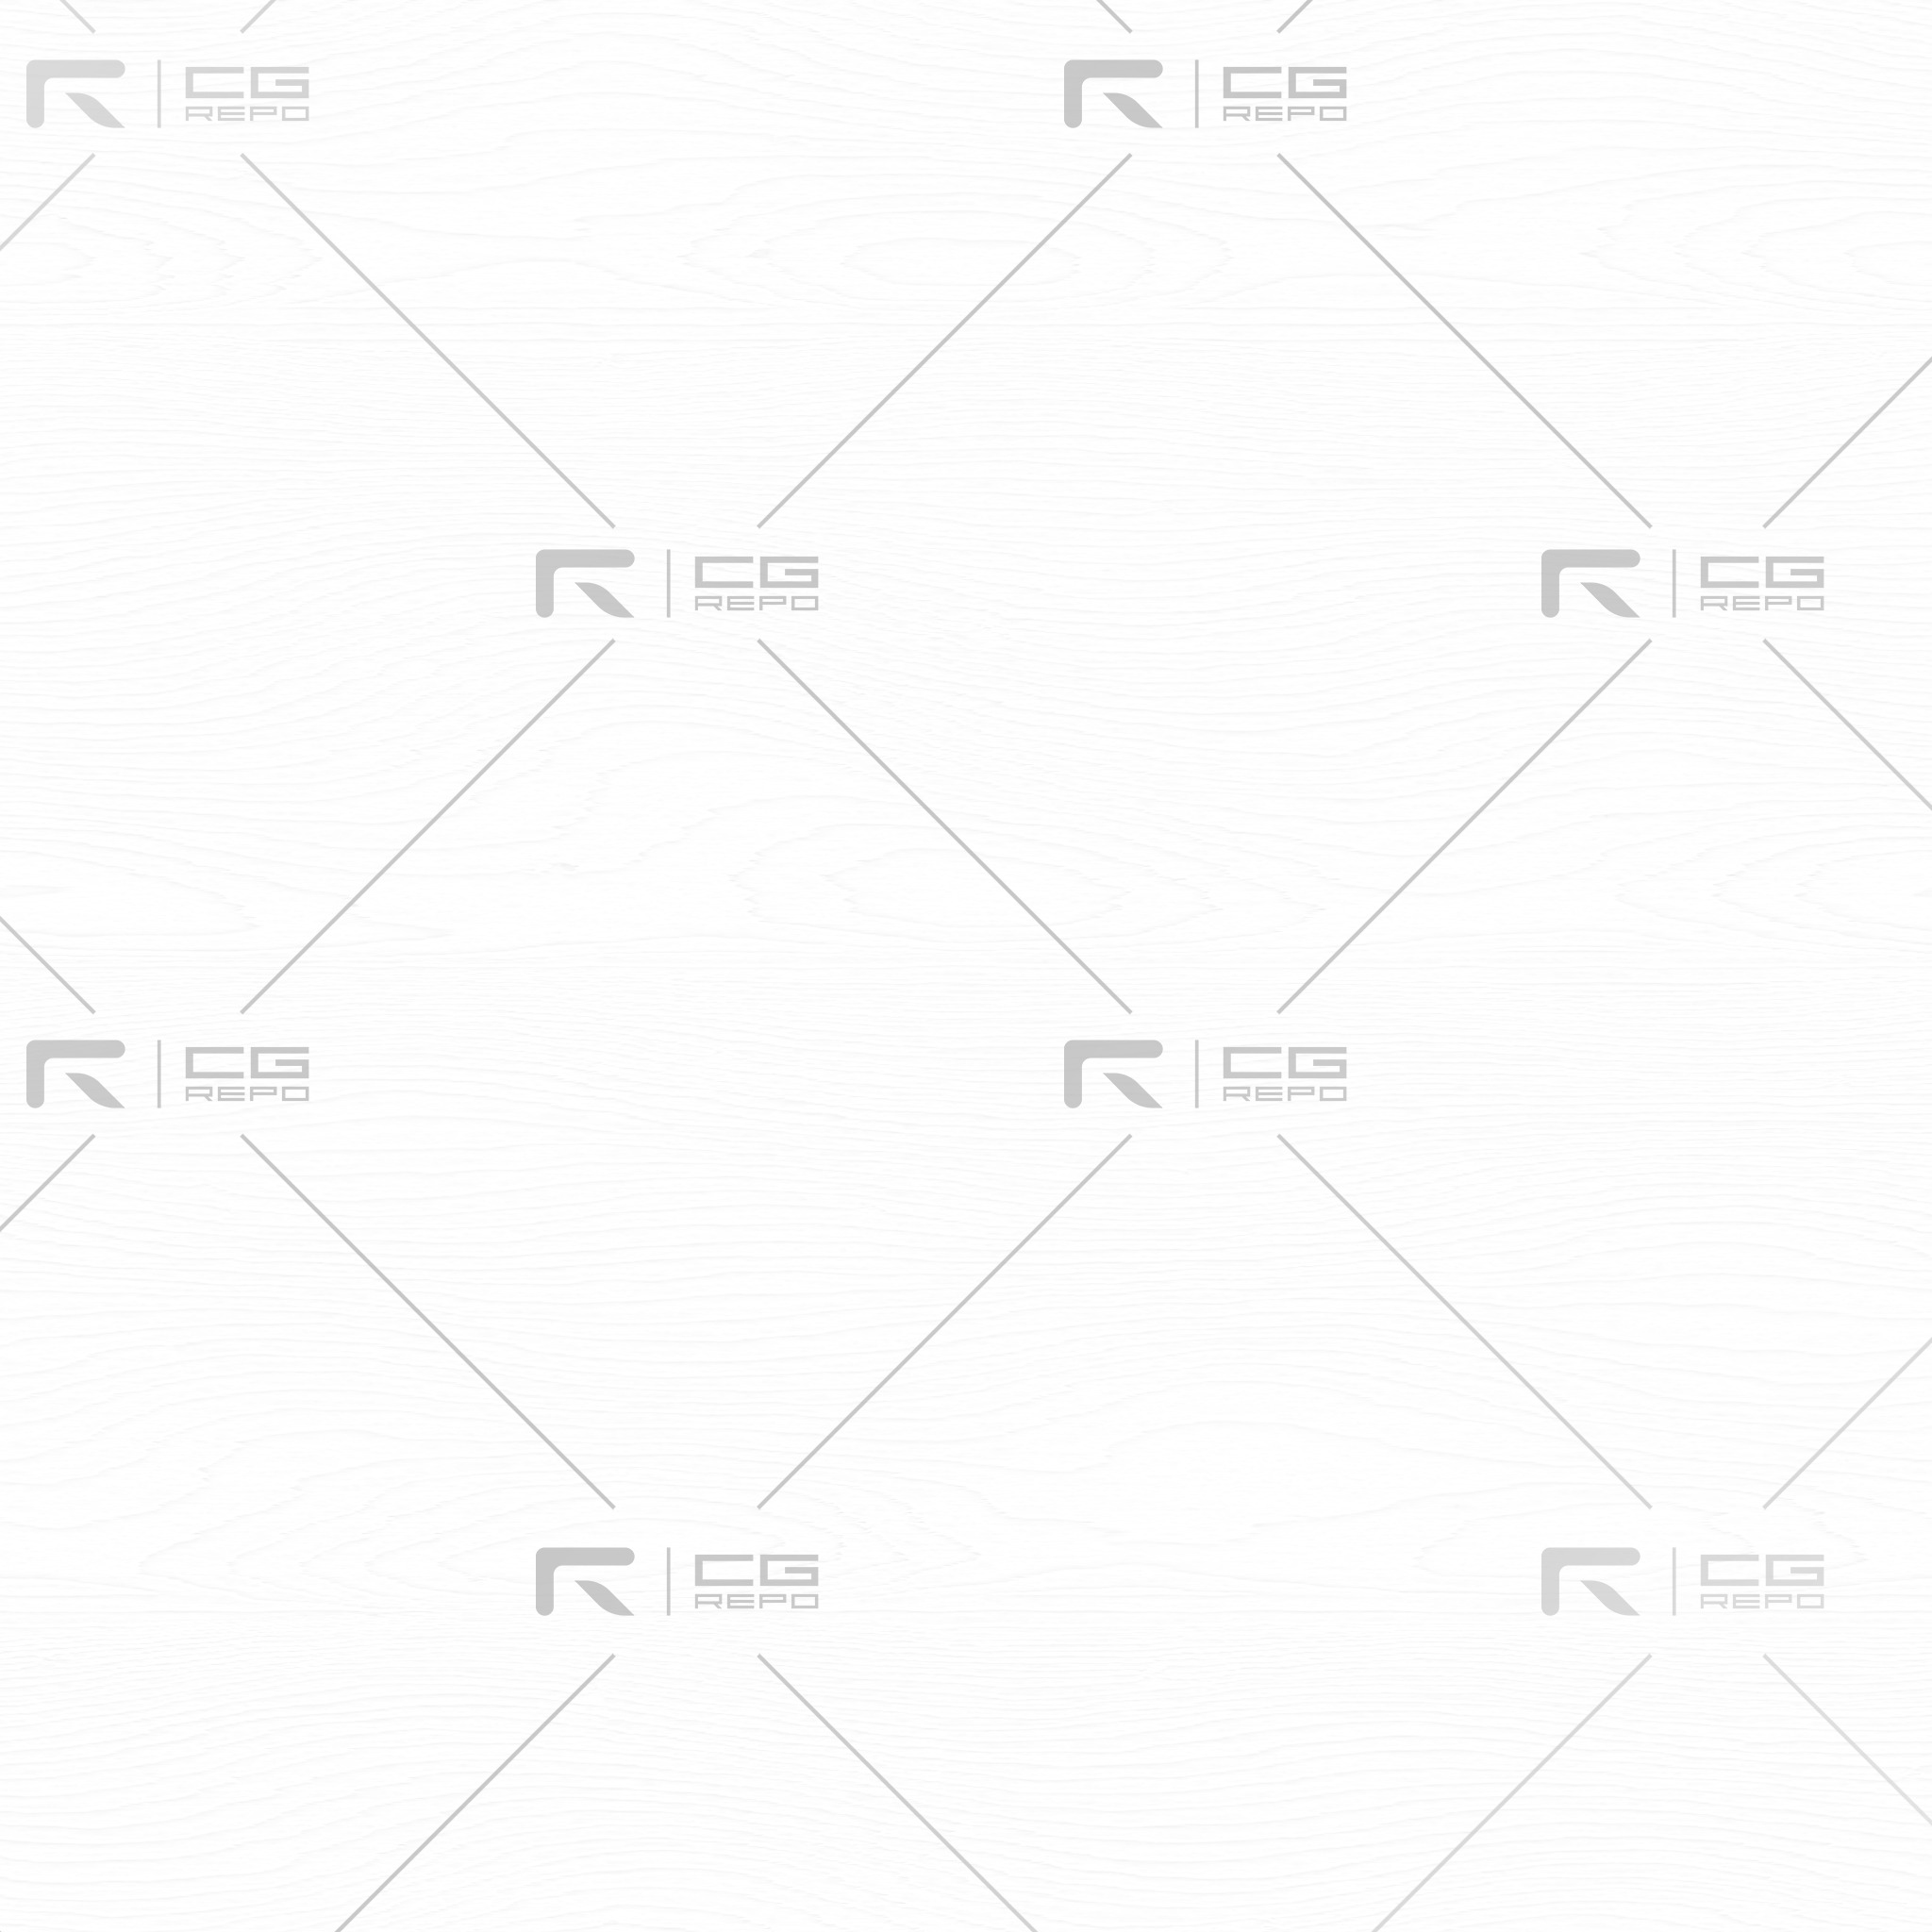 Oak - Painted Grunge Grey - Flat Sawn Ambient Occlusion Texture